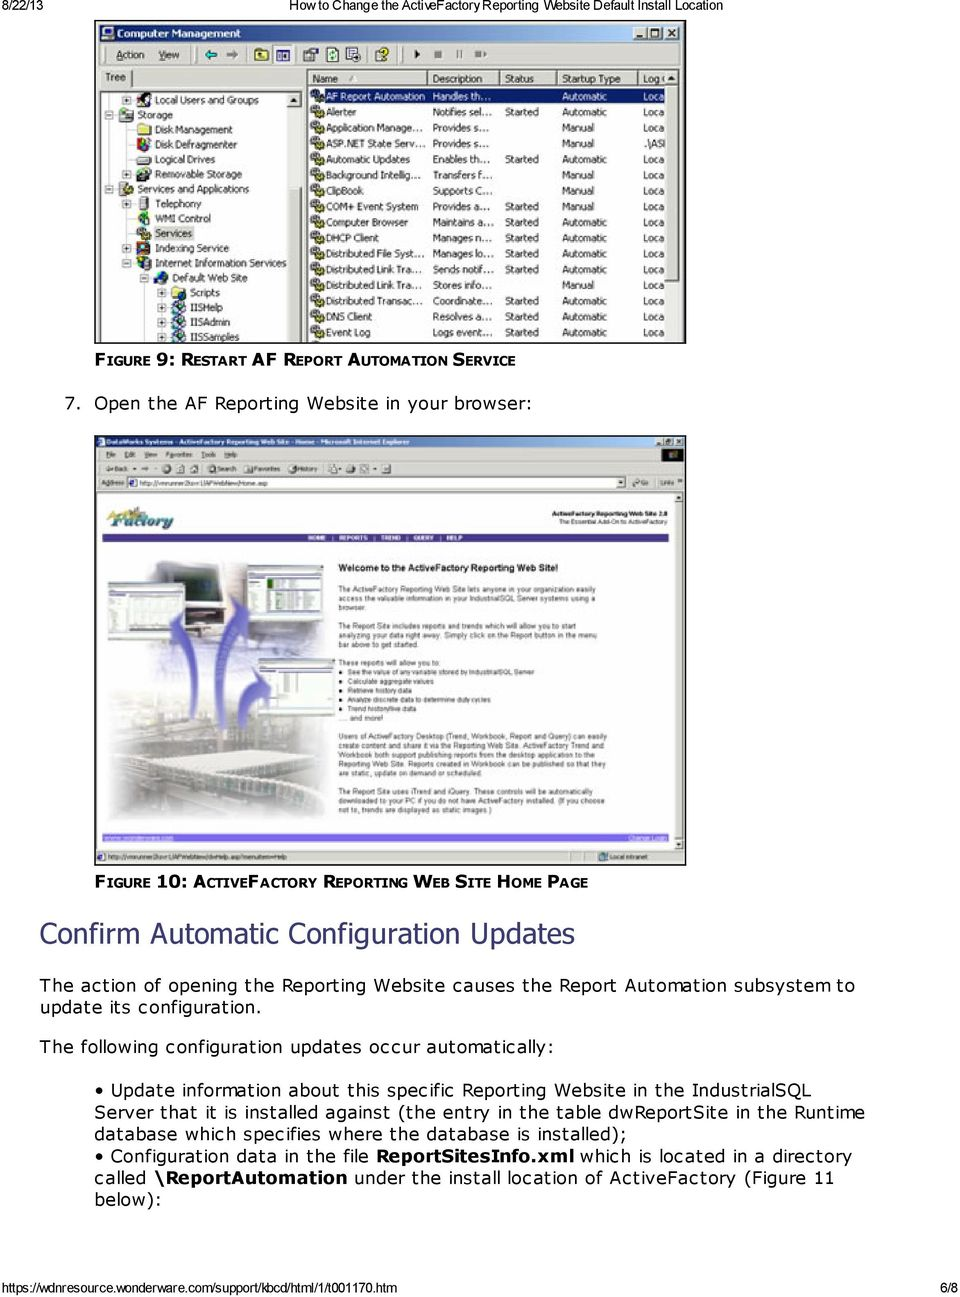 Report Automation subsystem to update its configuration.